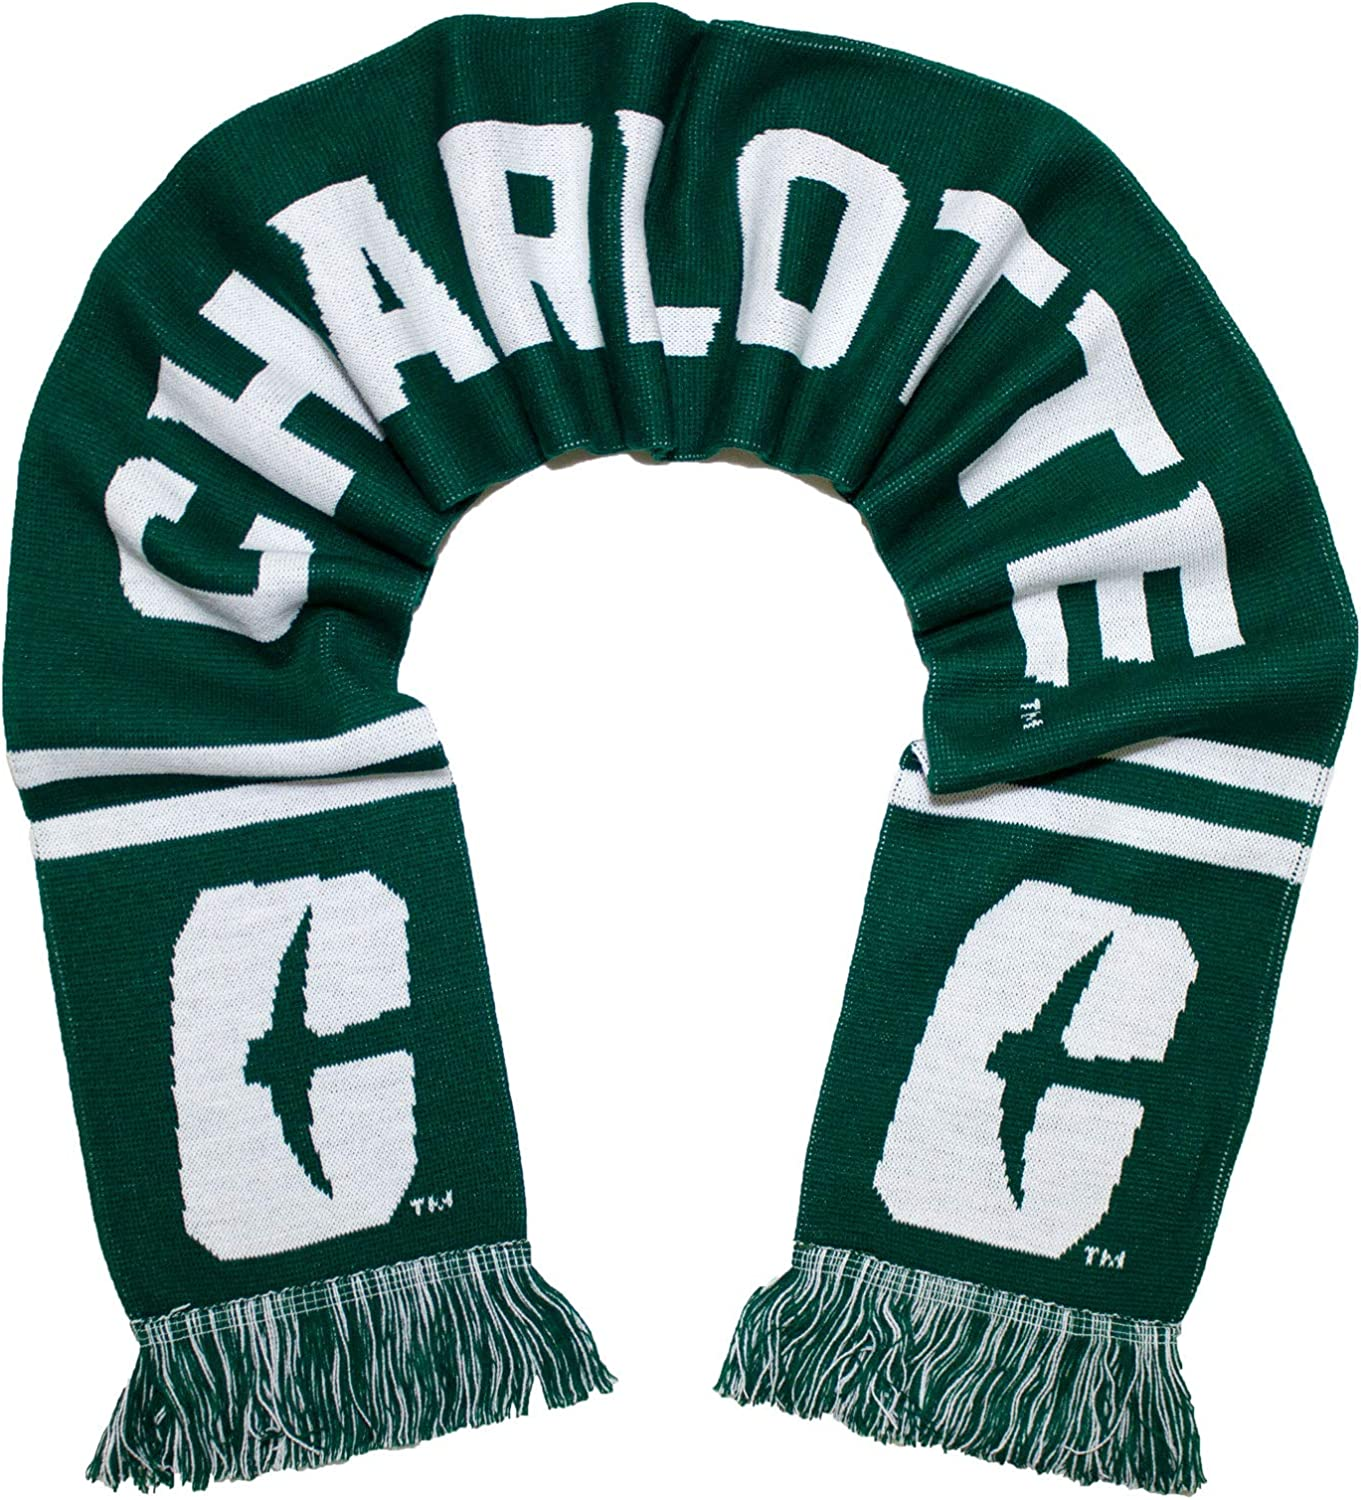 Charlotte Dallas Mall 49ers Scarf - Classic UNC Knitted Now free shipping